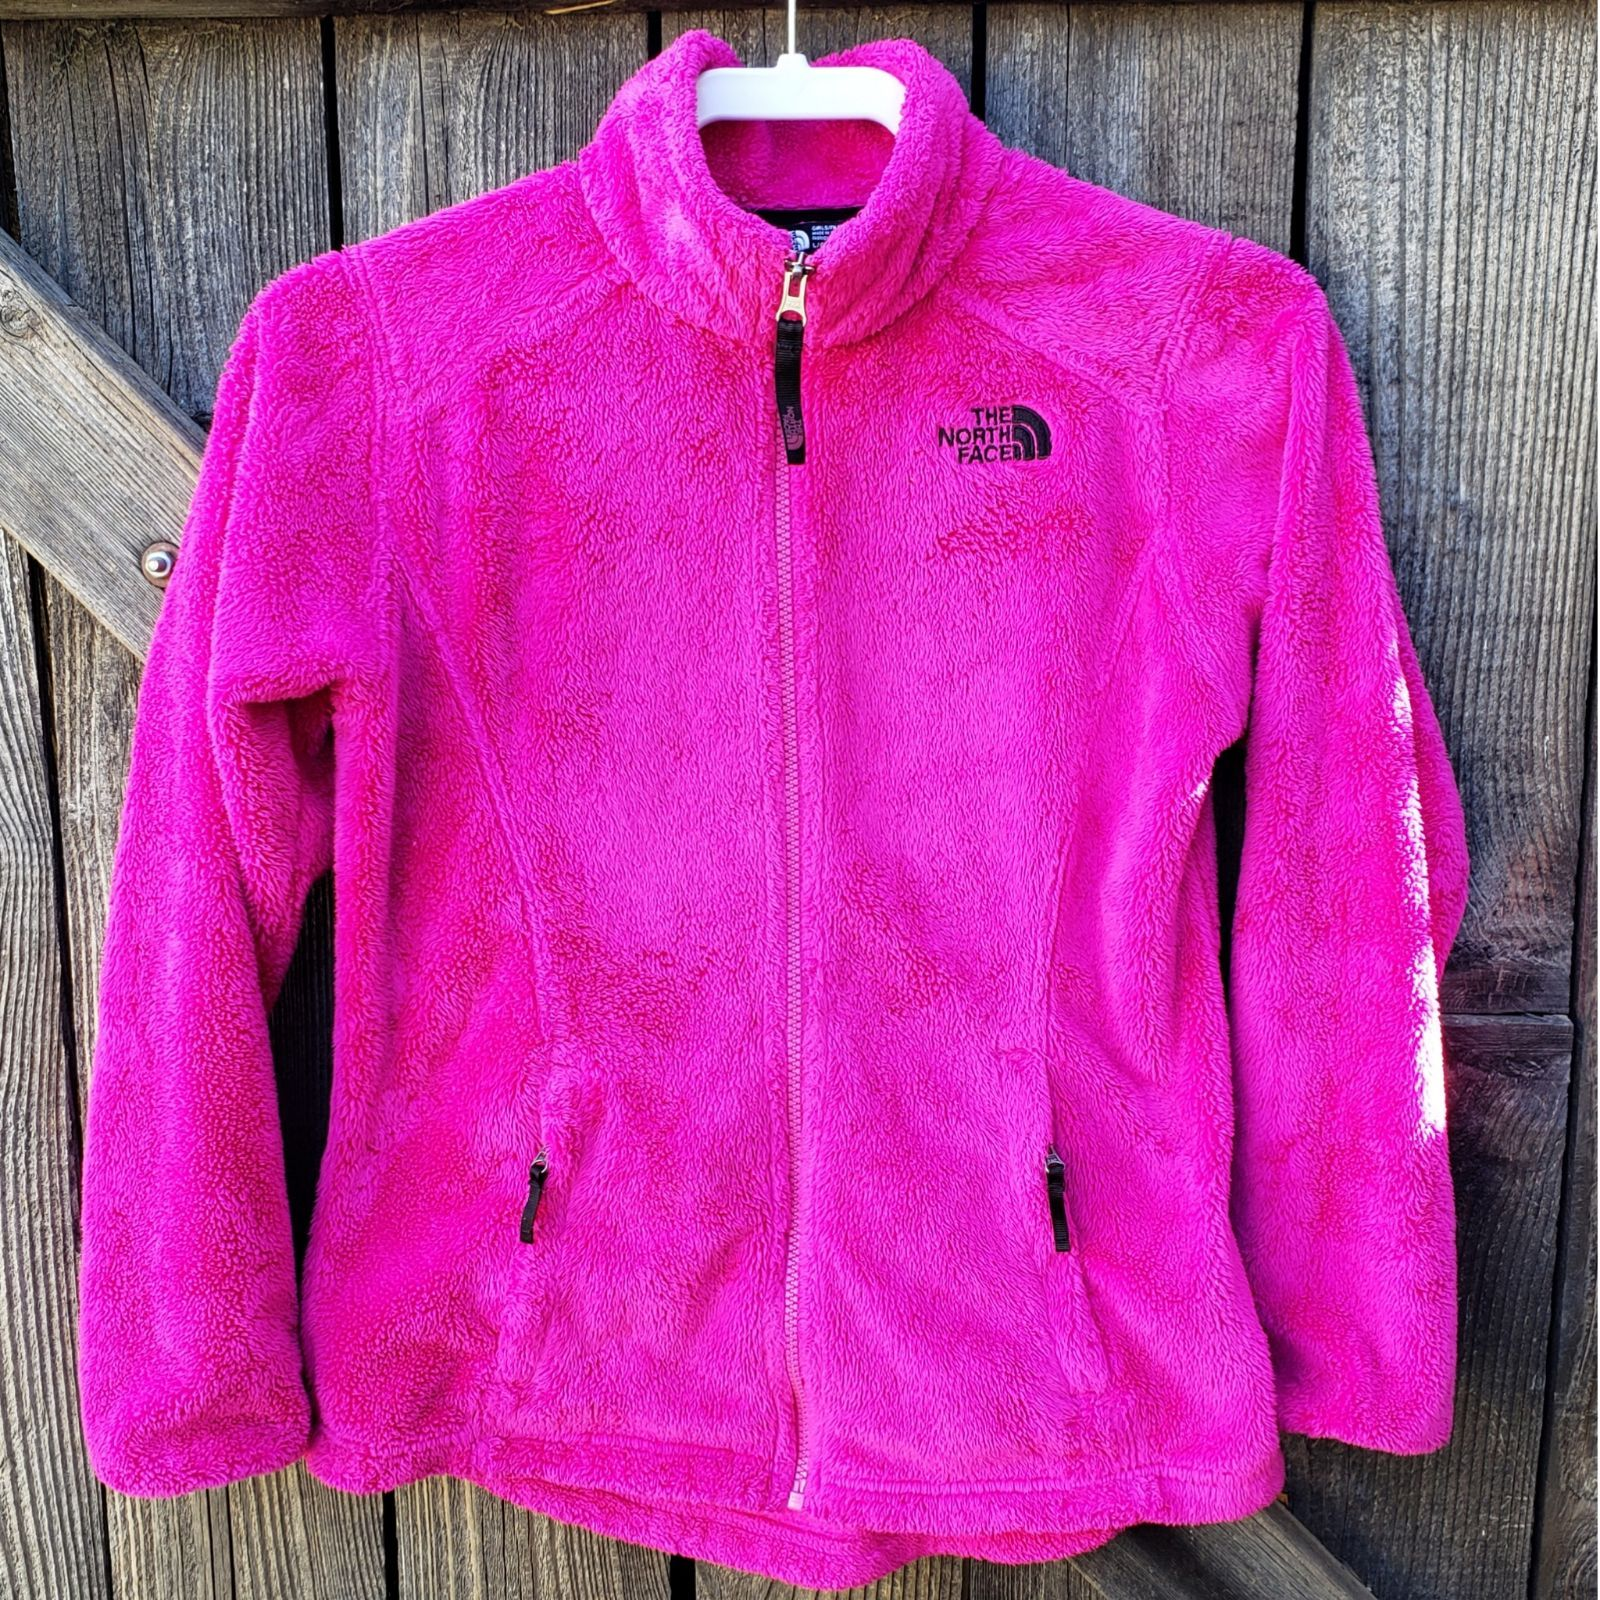 The North Face Osolita Fleece Hot Pink Jacket Girls Youth Large 14 16 Gently Used In Great Condition Zip Up Closure With Tw Pink Jacket Jackets Girls Jacket [ 1600 x 1600 Pixel ]